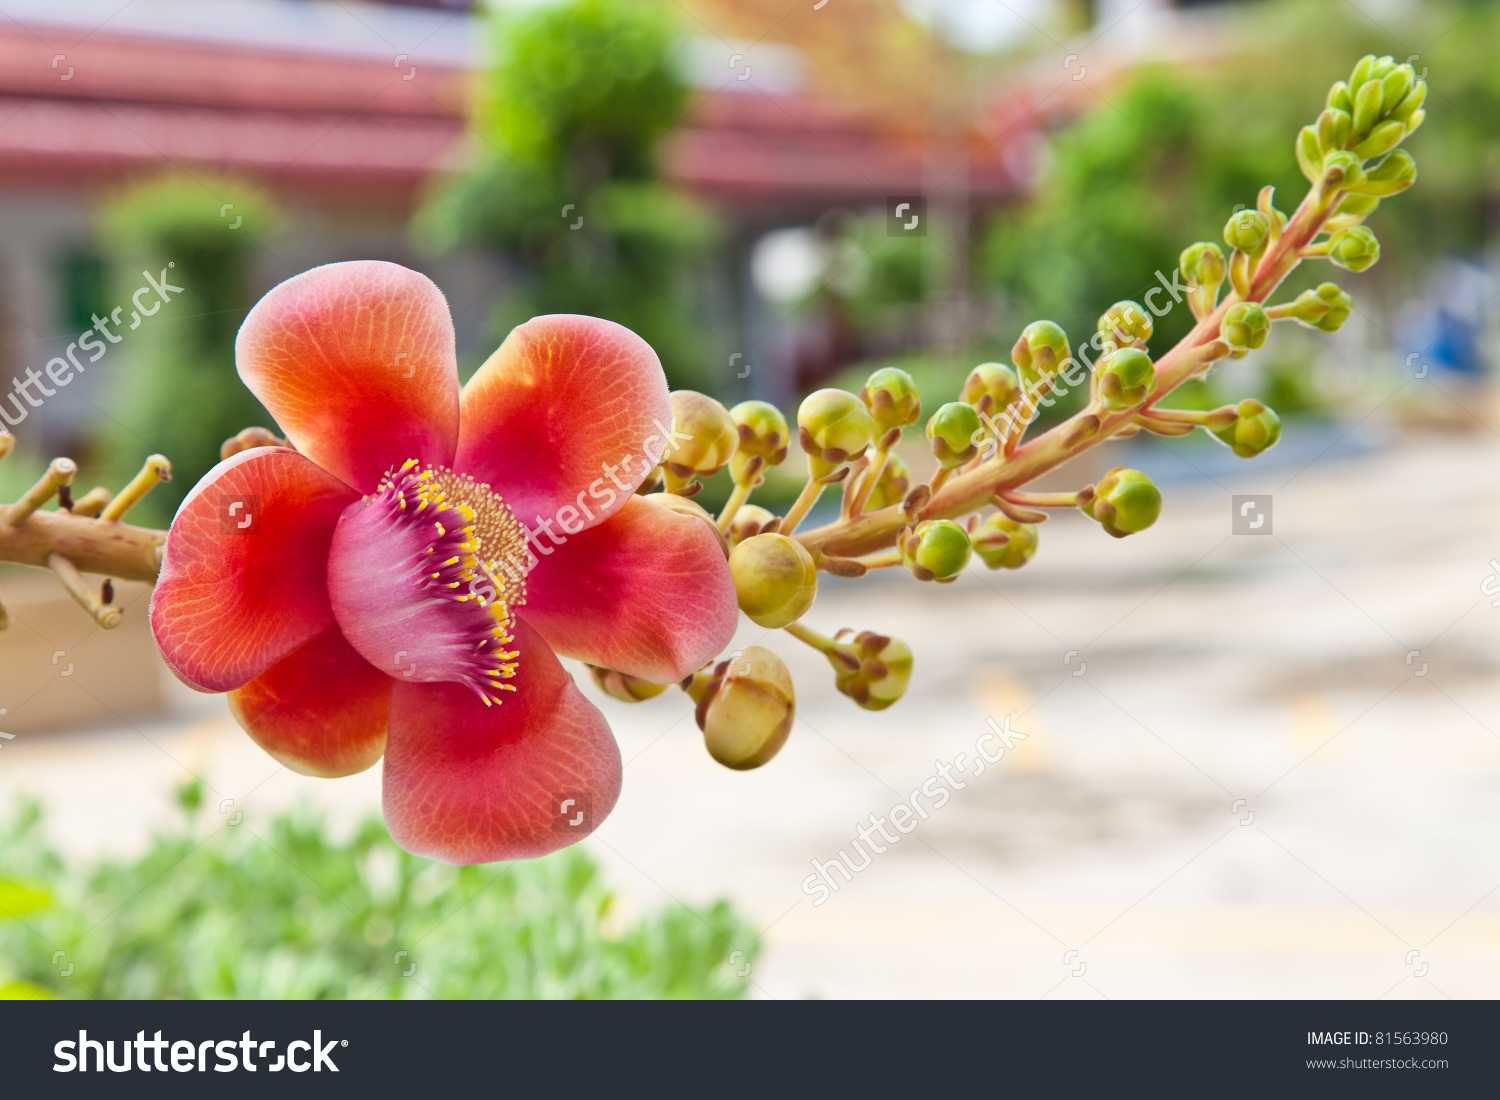 Flower Cannon Ball Tree Stock Photo 81563980.